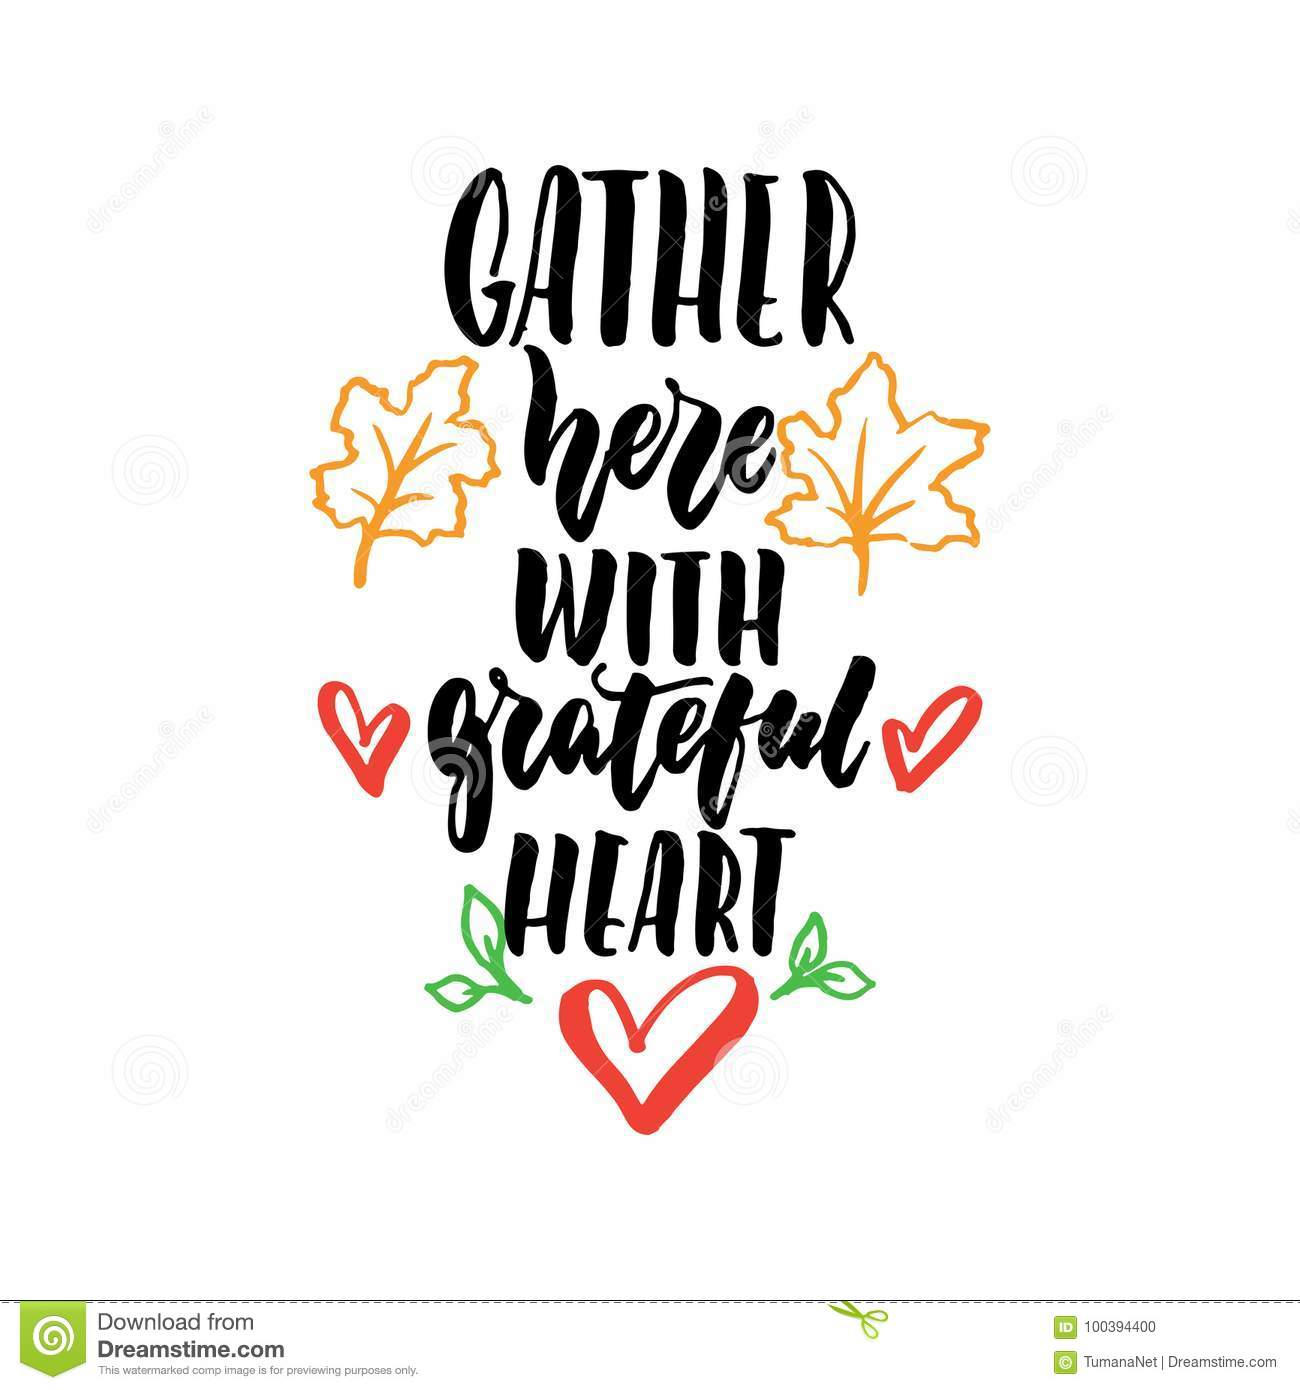 Gather here with grateful heart - Thanksgiving hand drawn lettering quote isolated on the white background. Fun brush